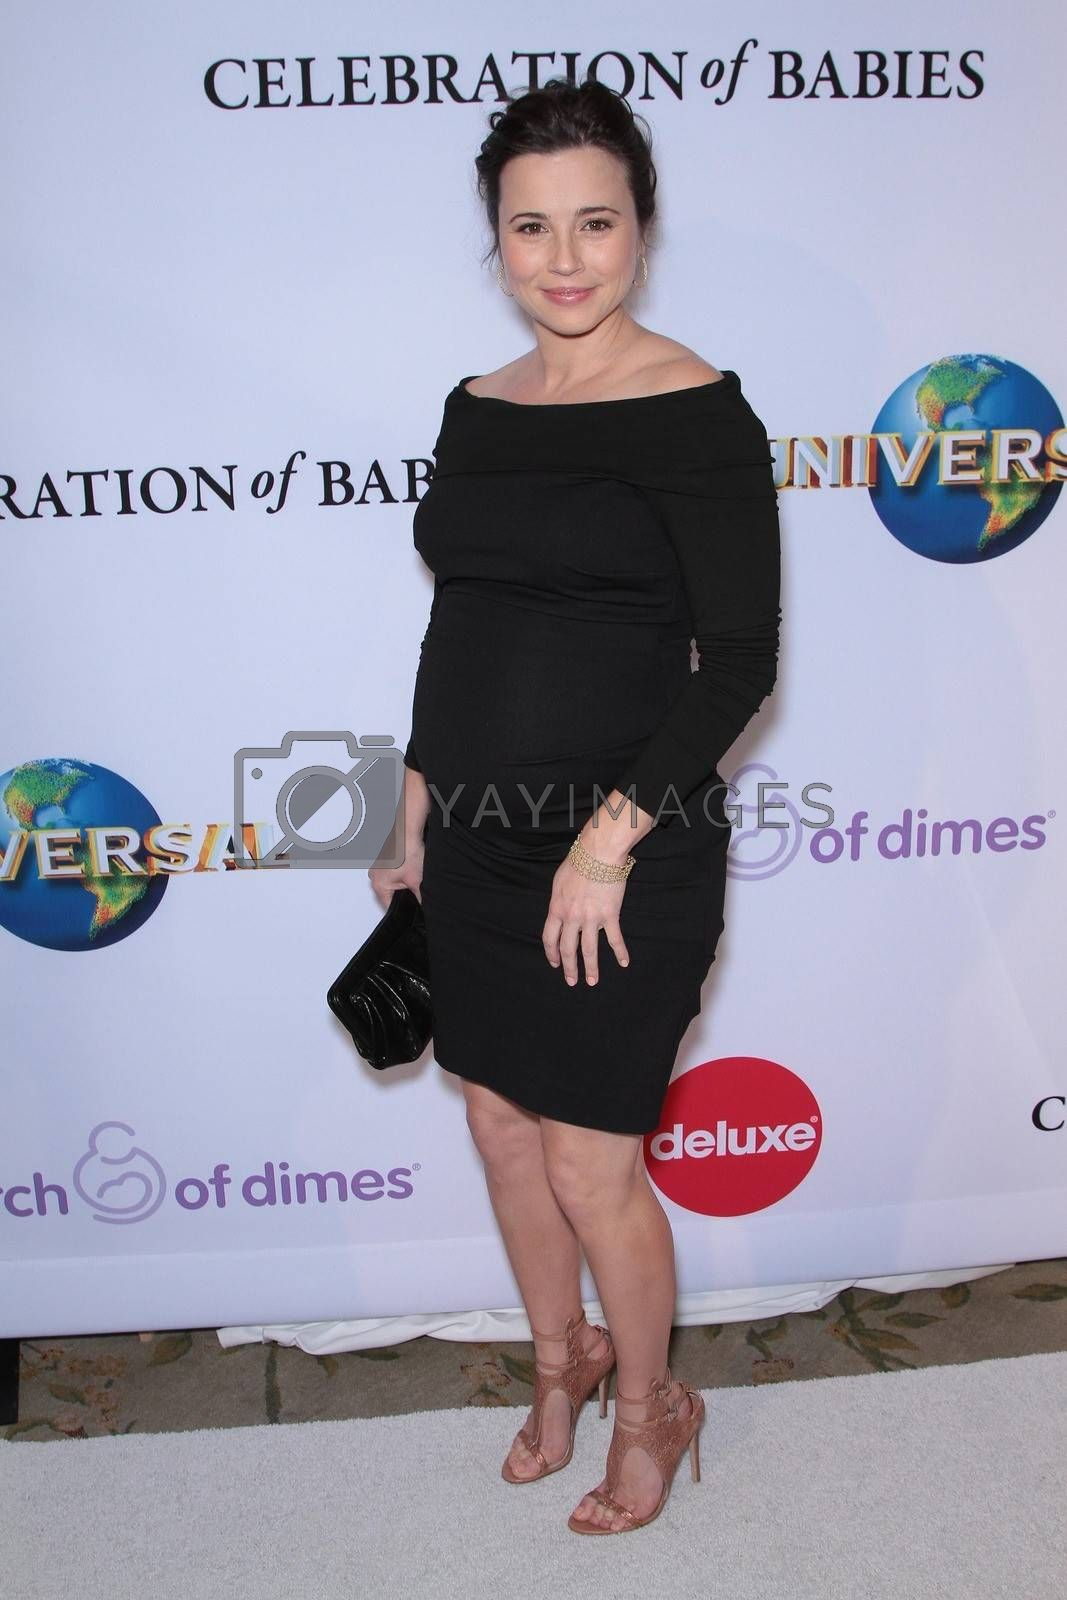 Linda Cardellini at the March Of Dimes' 6th Annual Celebration Of Babies Luncheon, Beverly Hills Hotel, Beverly Hills, CA 12-02-11/ImageCollect by ImageCollect